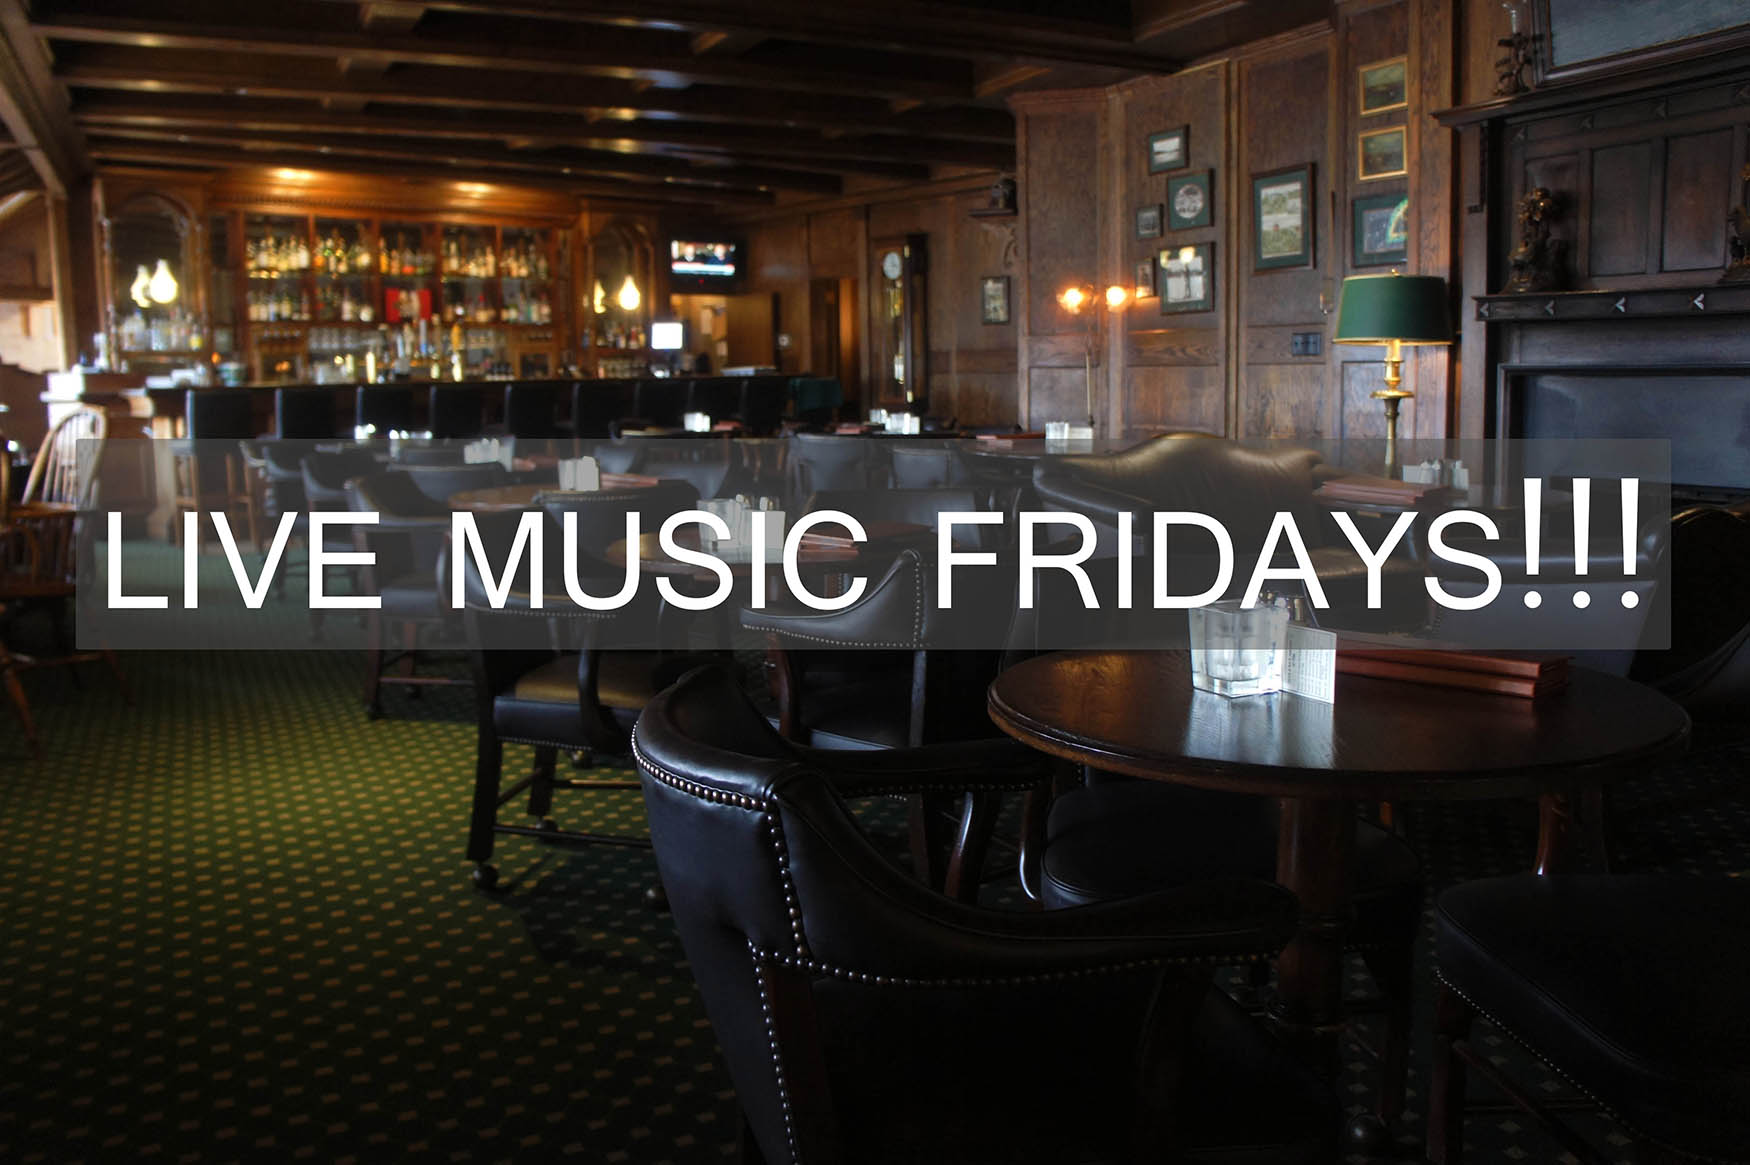 Jimmy's Live Entertainment, Live Music Friday's